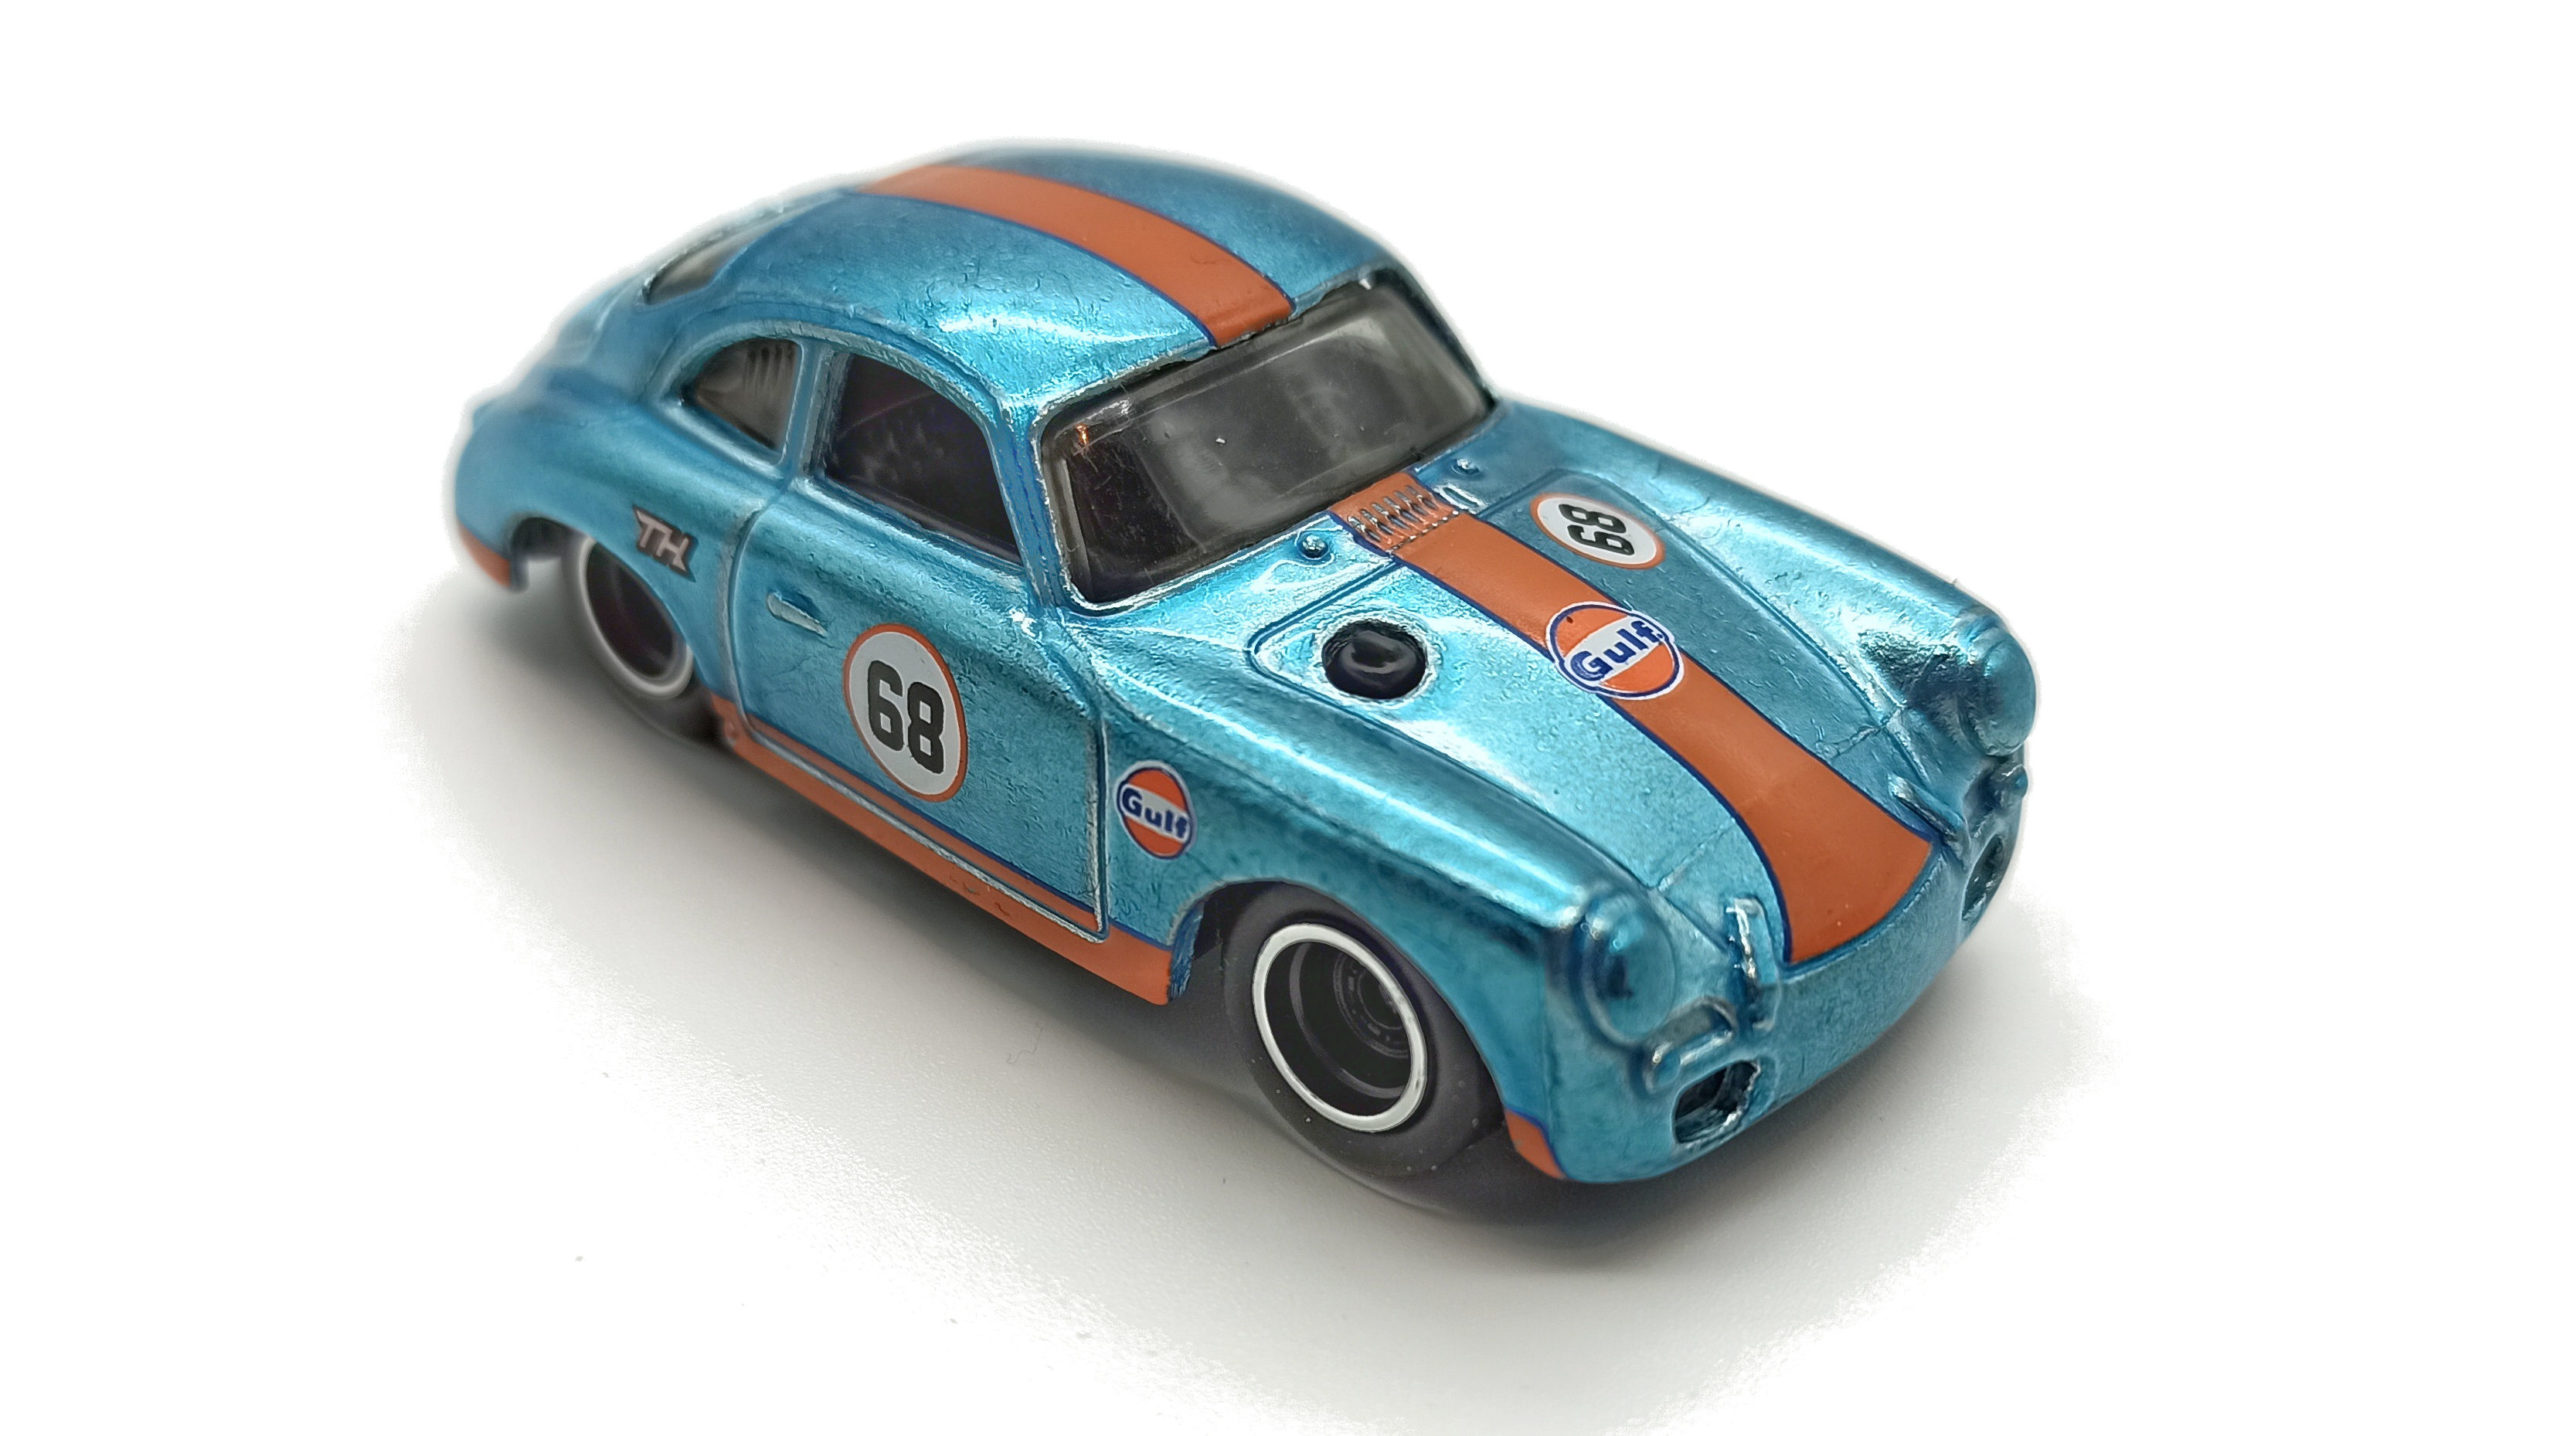 Hot Wheels Porsche 356 Outlaw (GTD08) 2021 (171/250) HW Speed Graphics (7/10) spectraflame light blue (Gulf) Super Treasure Hunt (STH) top angle